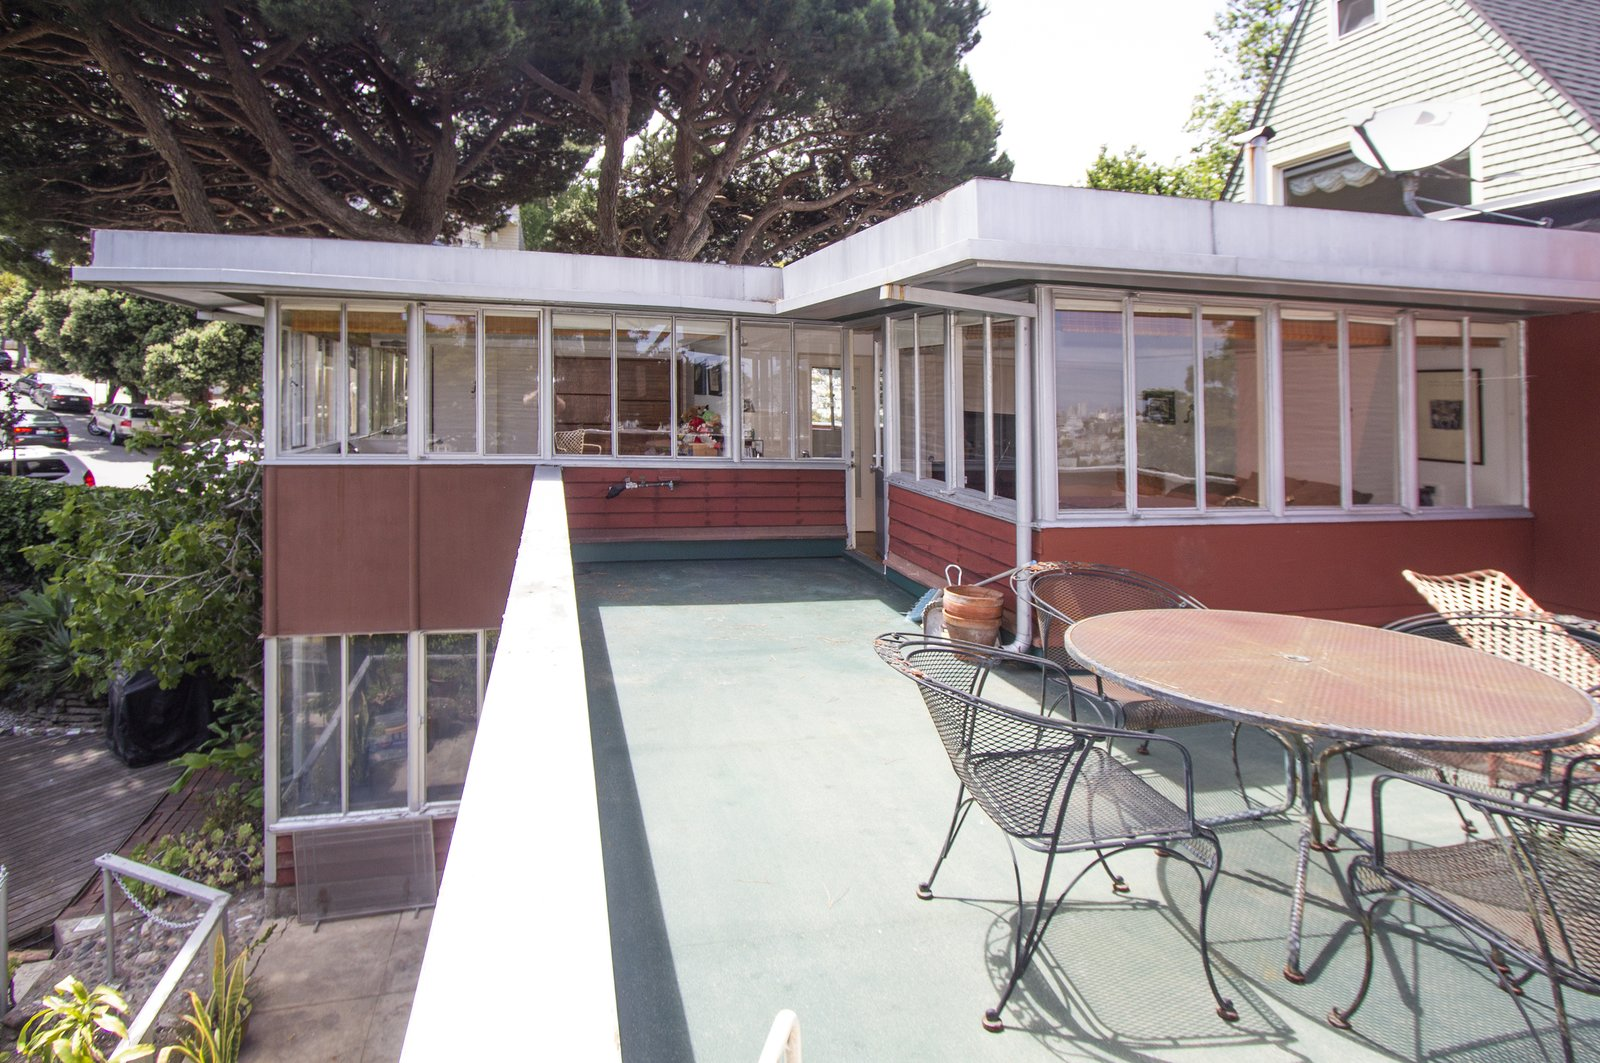 A Rare Richard Neutra Home Is Listed For $2.2M in San Francisco